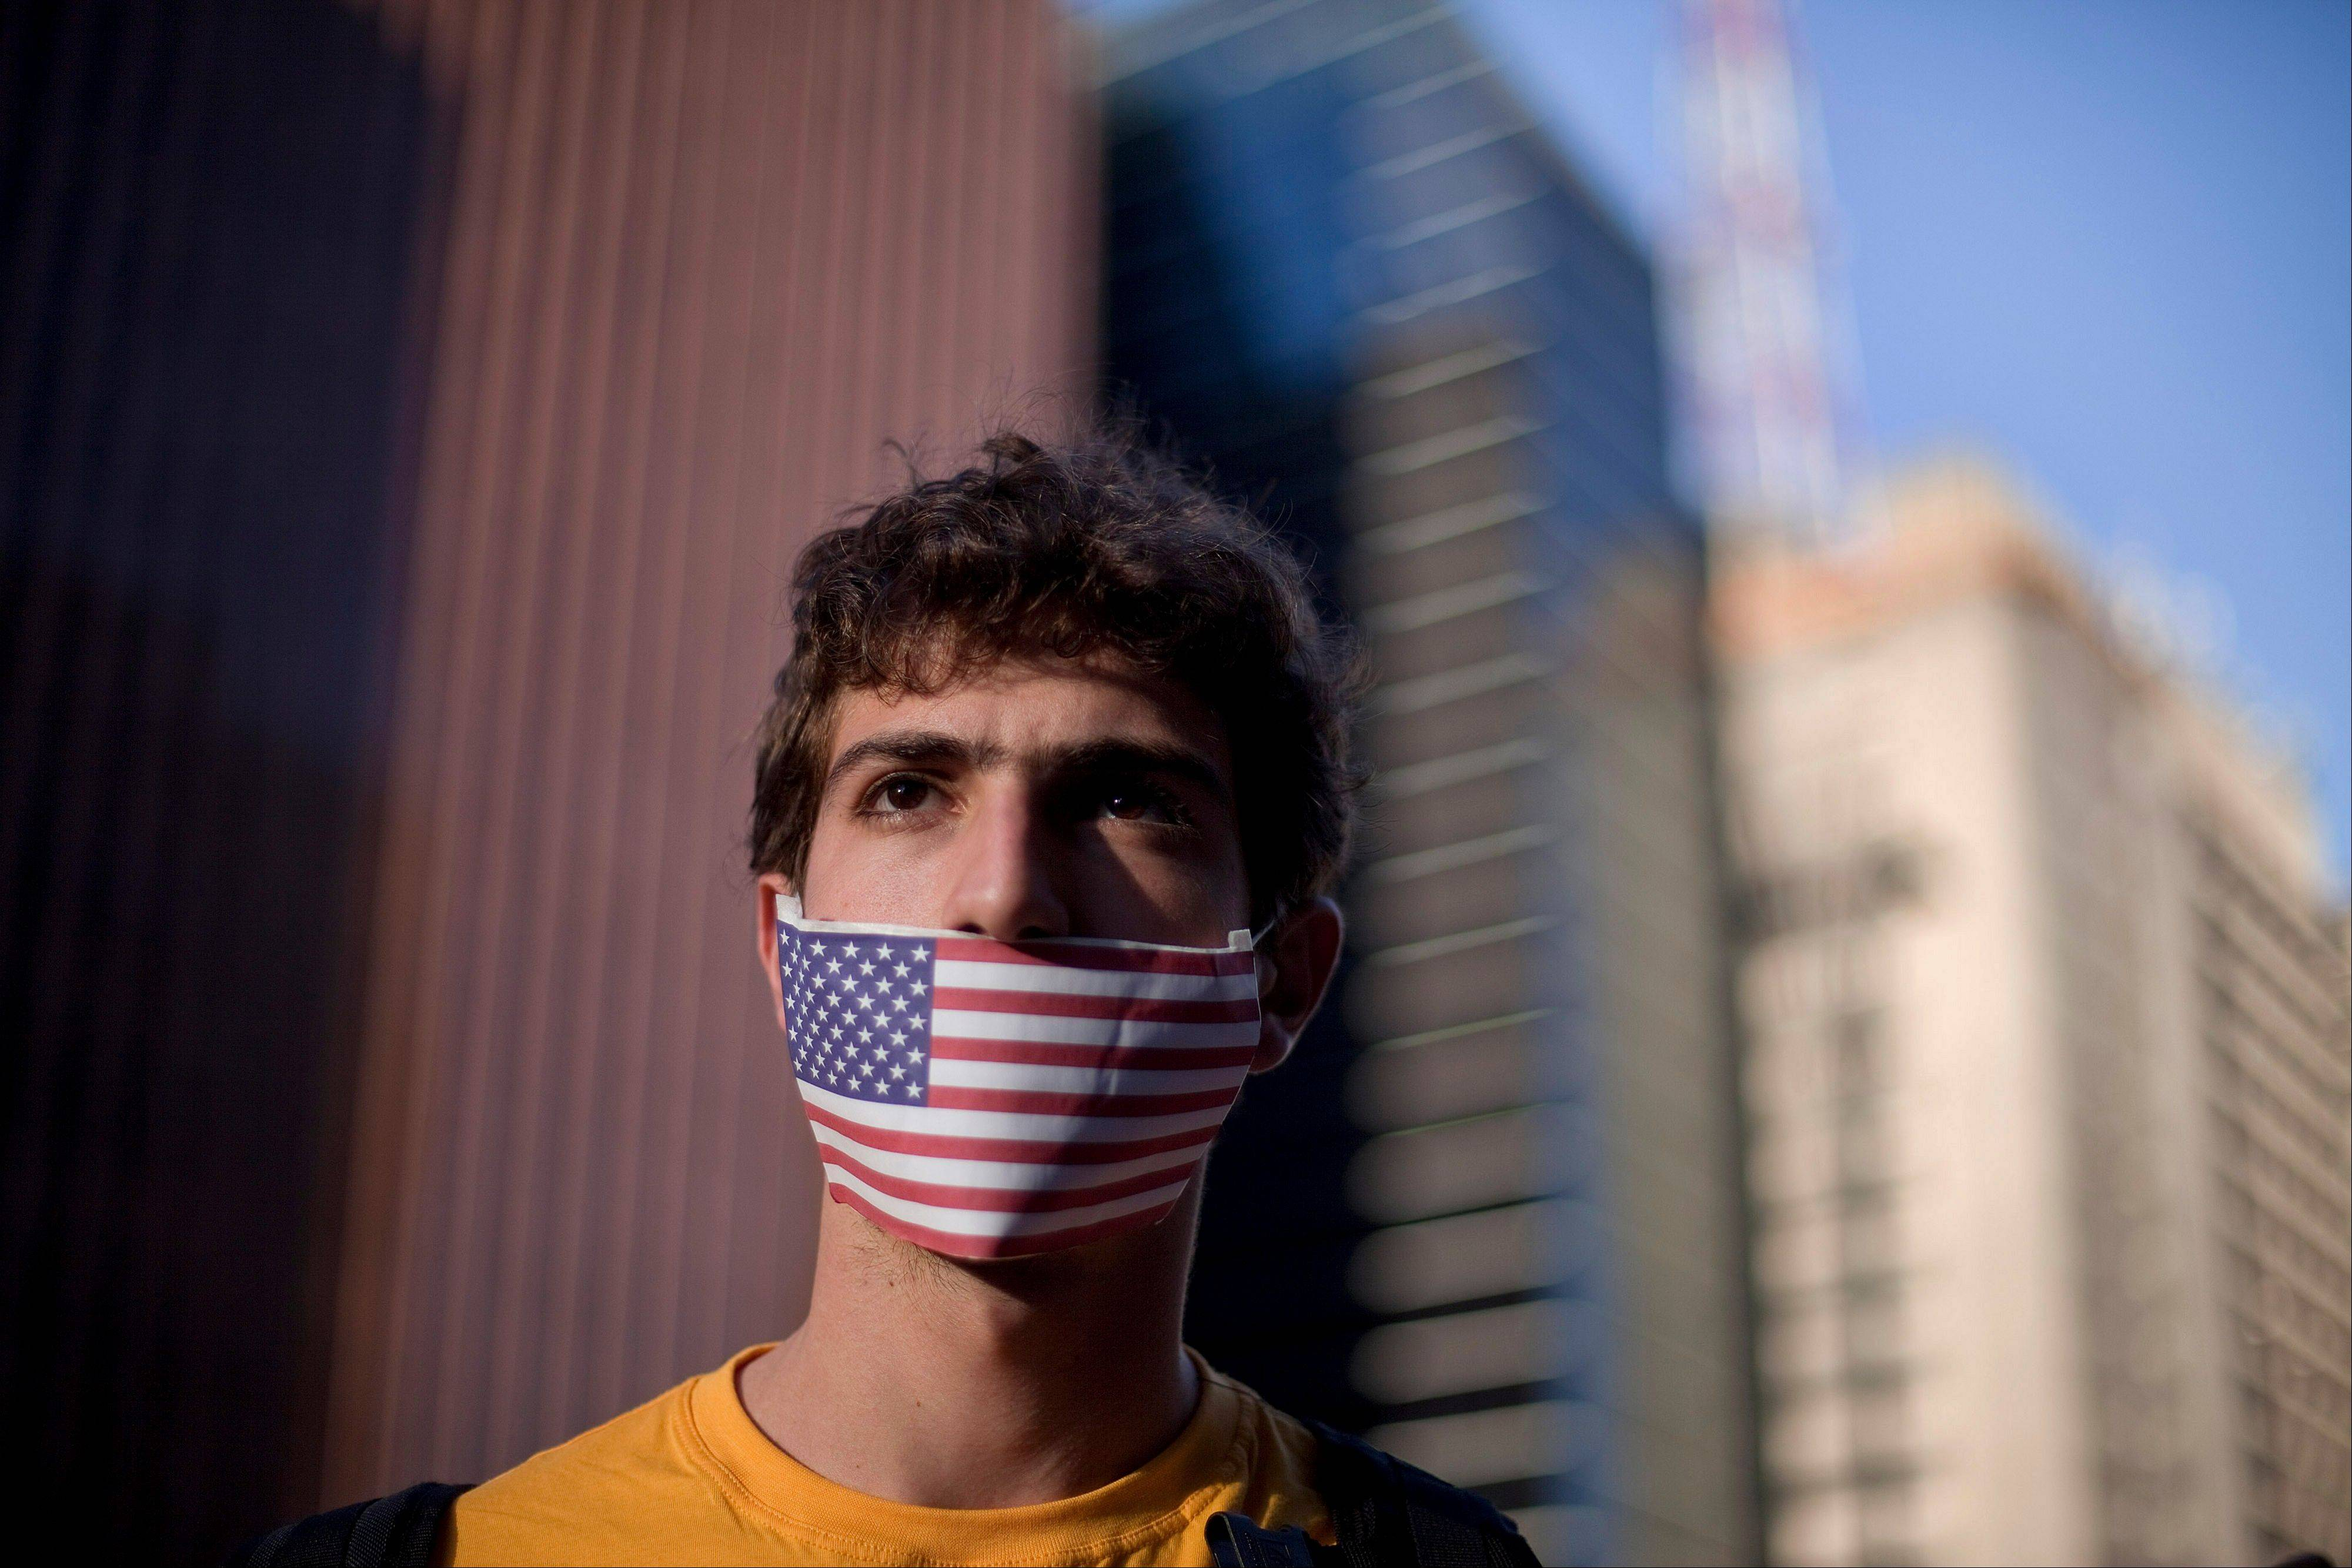 A bumpy 2013 erodes America's 'superpower' status